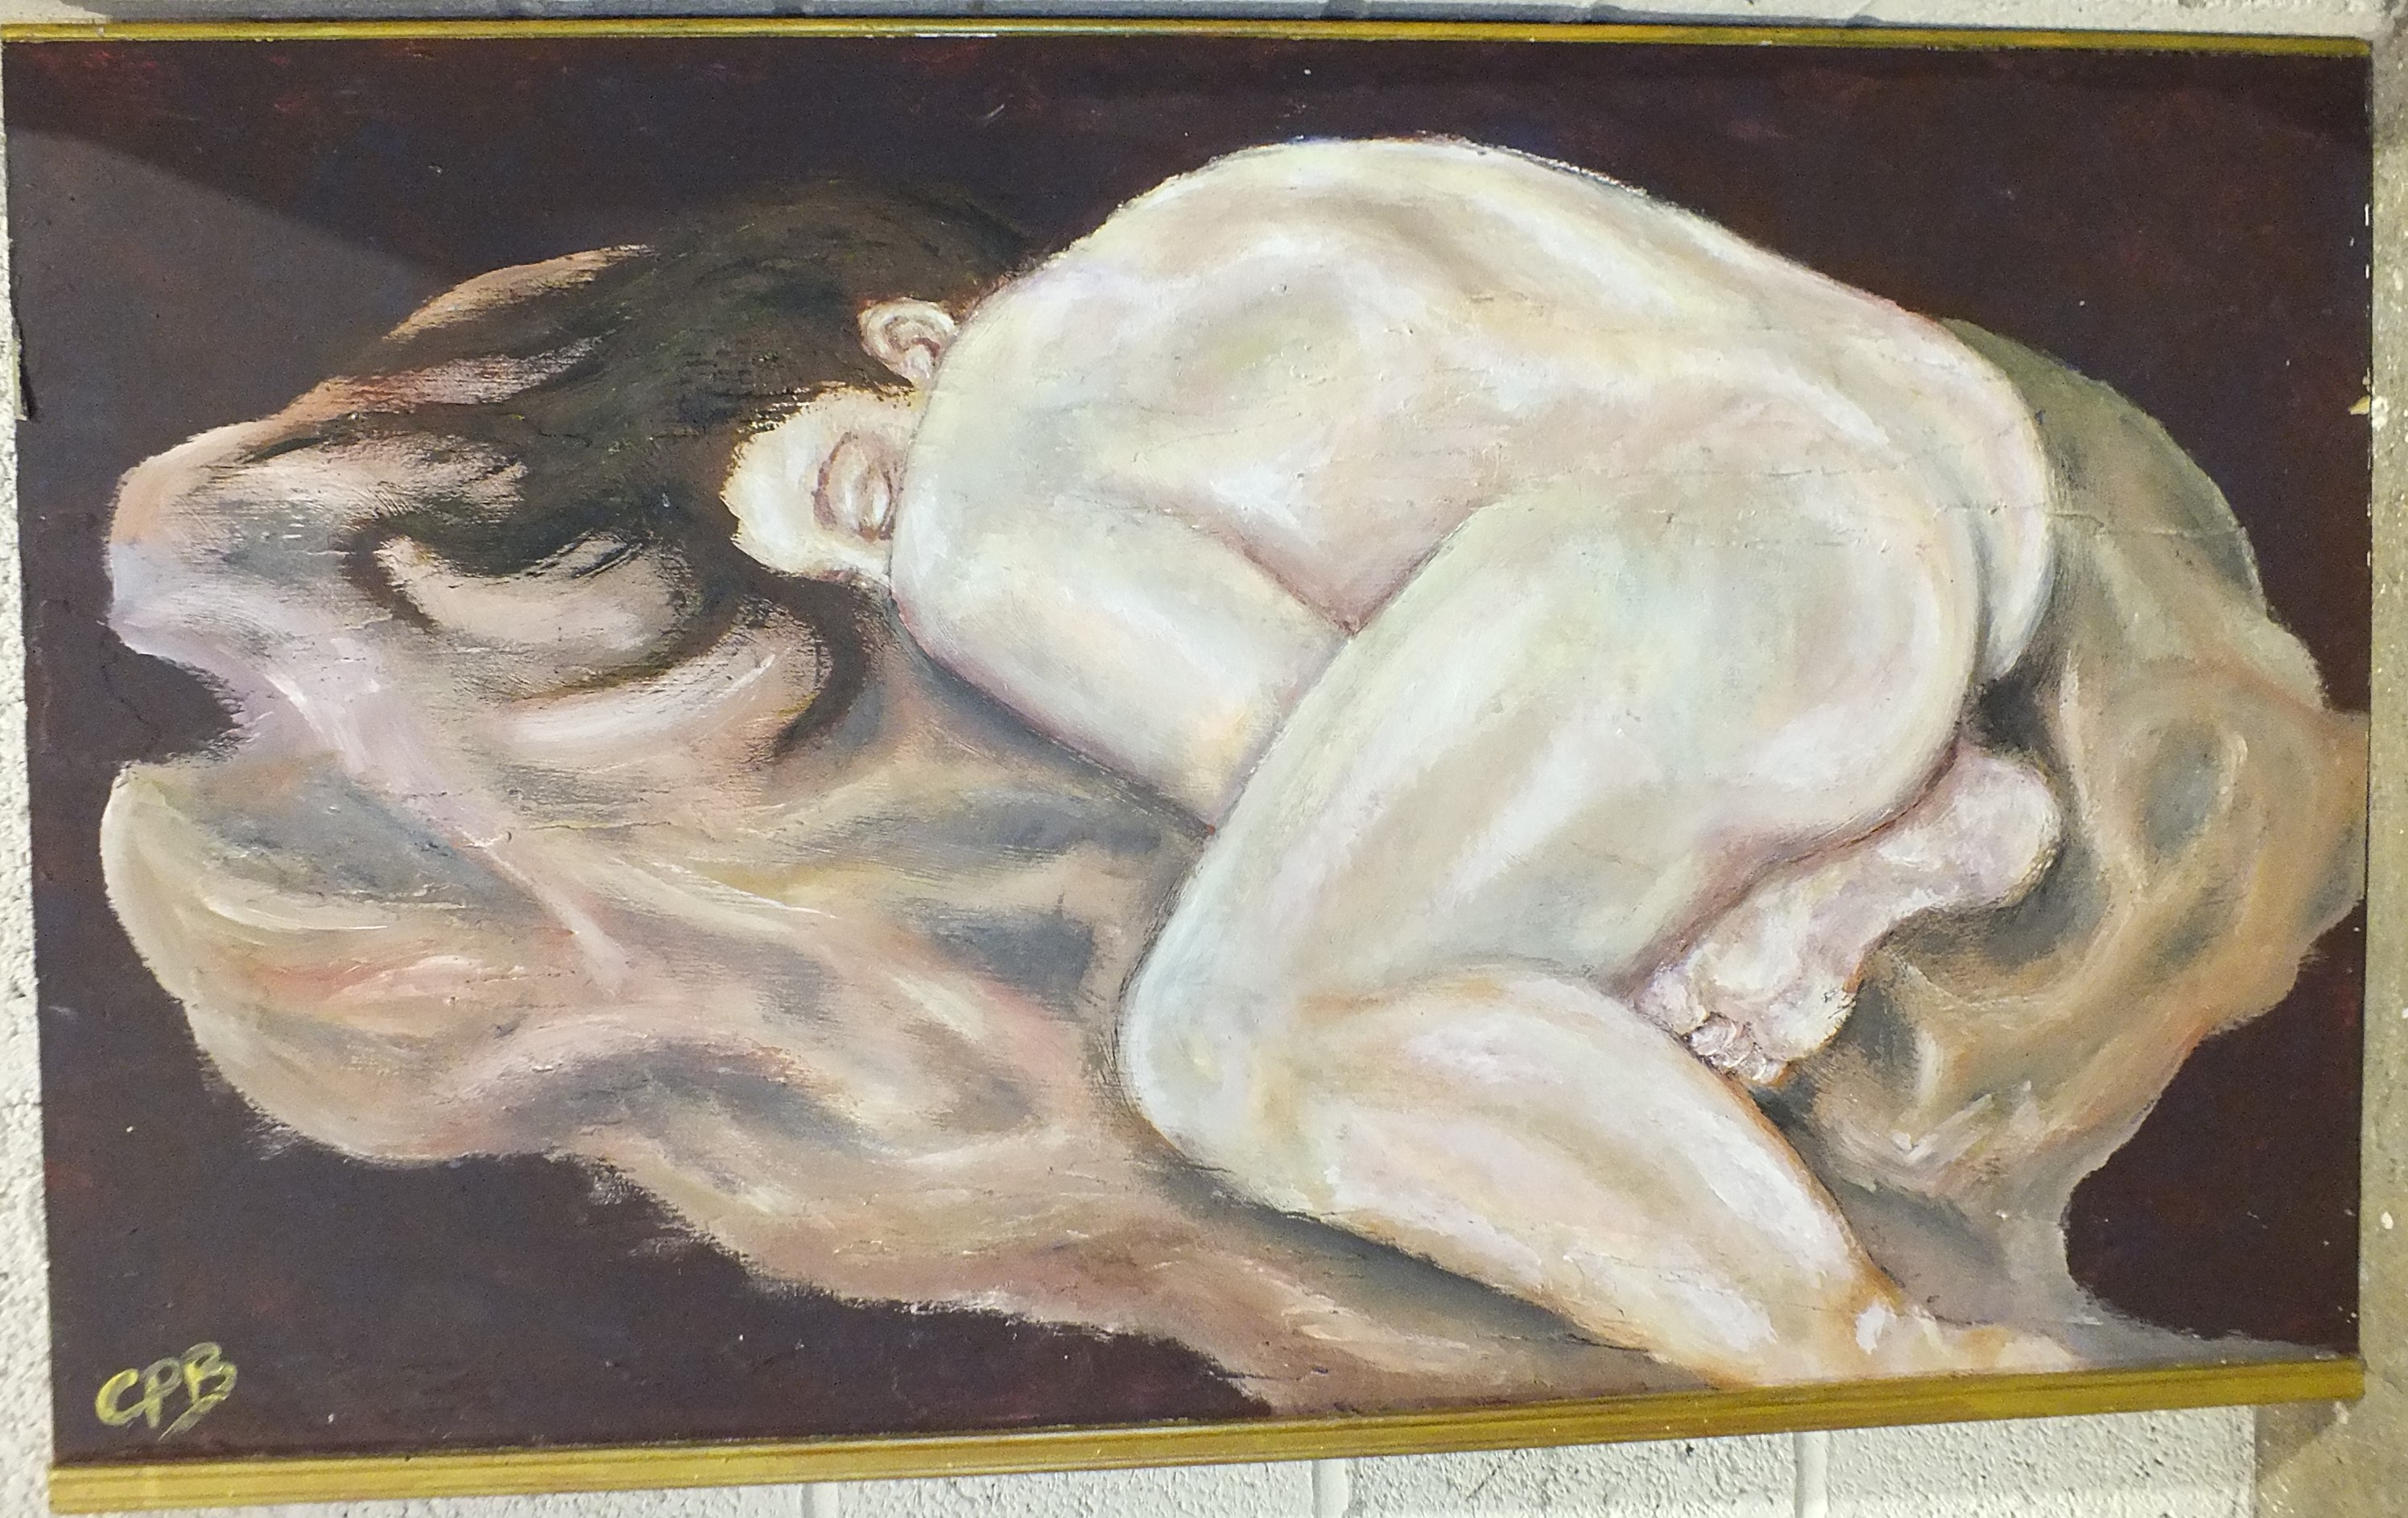 Lot 18 - C.P.B, contemporary, 'Nude figure on a bed', oil on block board, 60 x 100cm and three modern